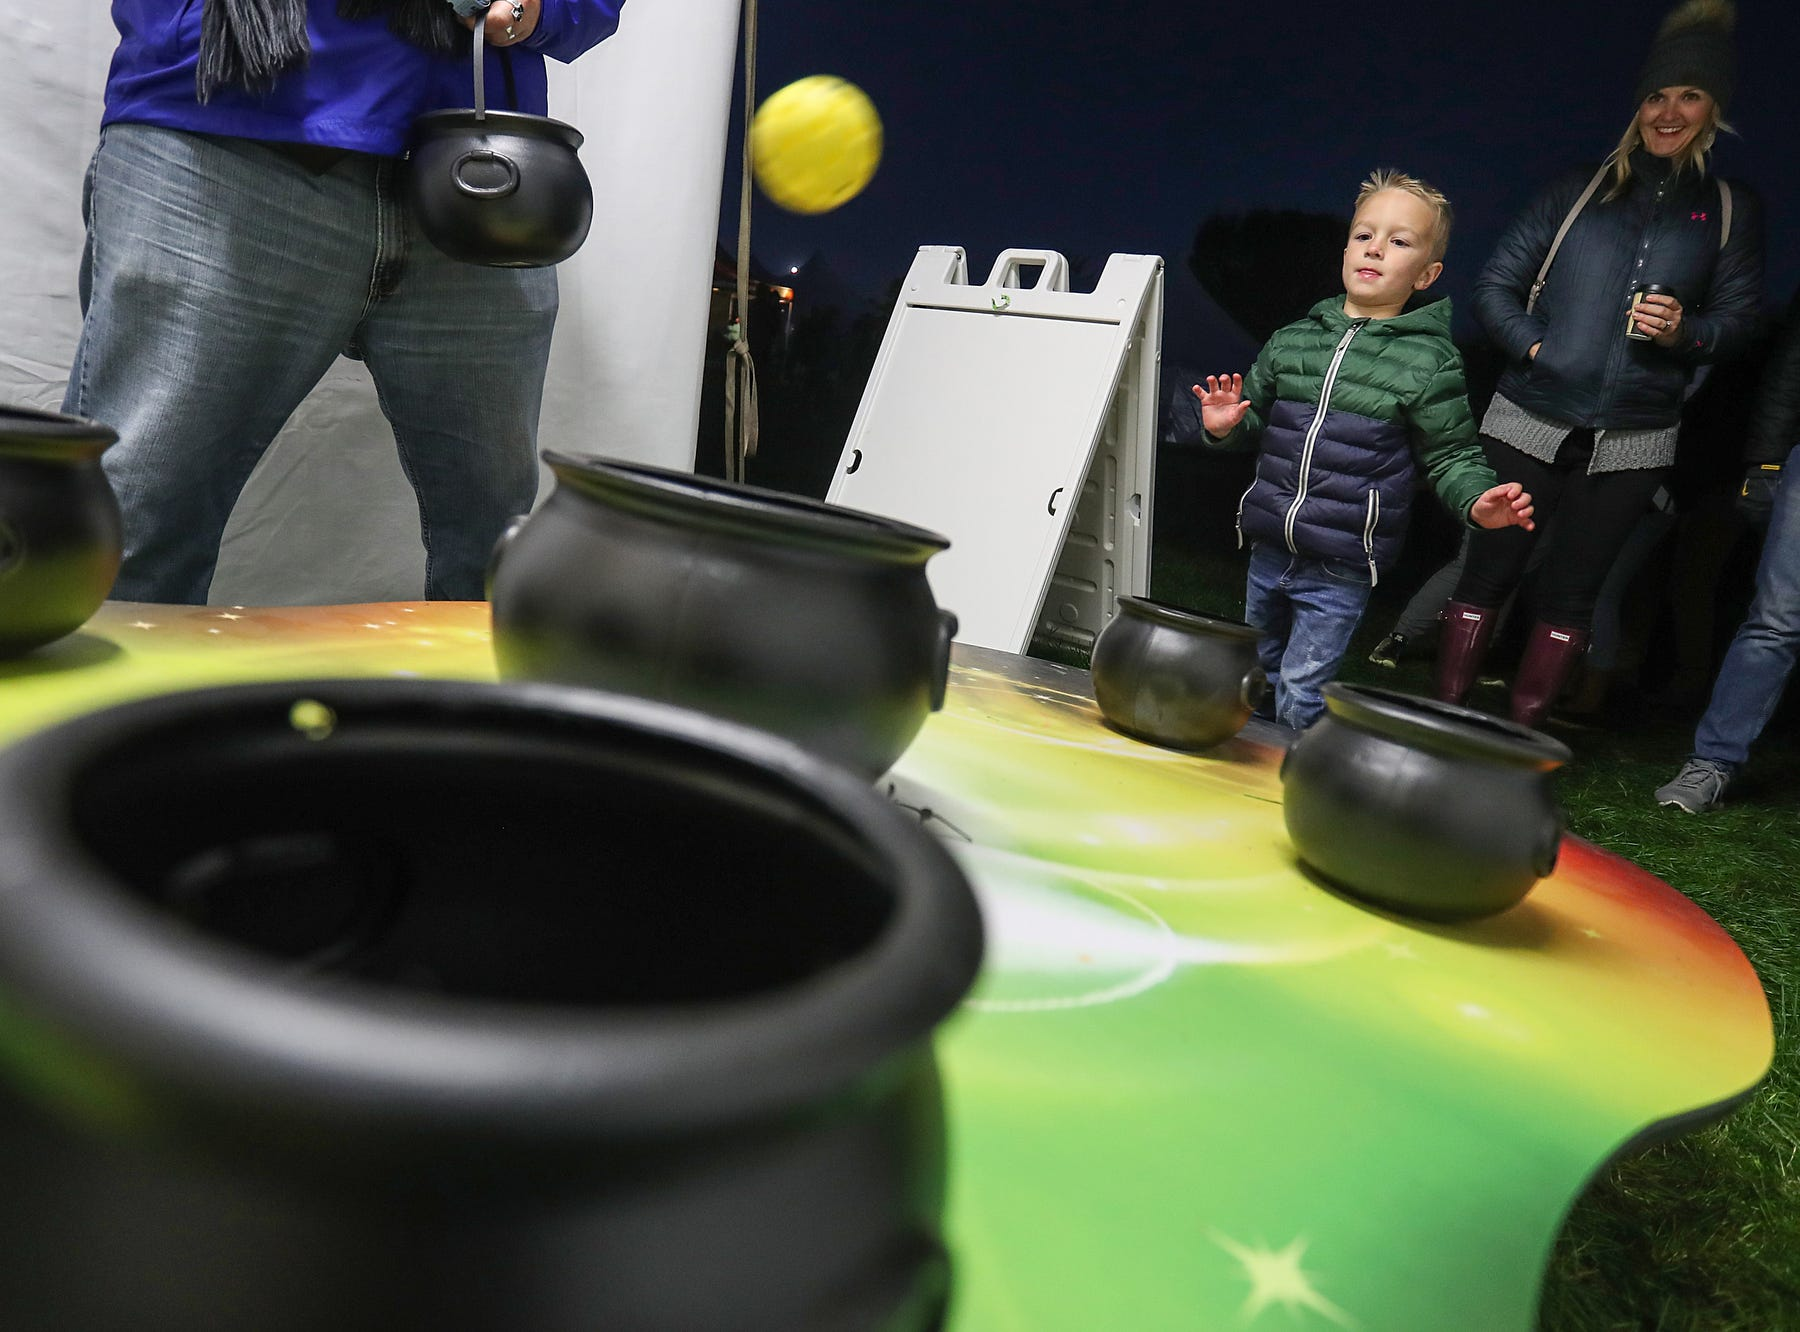 Children enjoy games on opening night of the annual Headless Horseman Halloween festival at Conner Prairie in Fishers, Ind., Thursday, Oct. 11, 2018. The festival is held from 6 to 9 p.m. every Thursday through Sunday, ending Oct. 28, 2018.